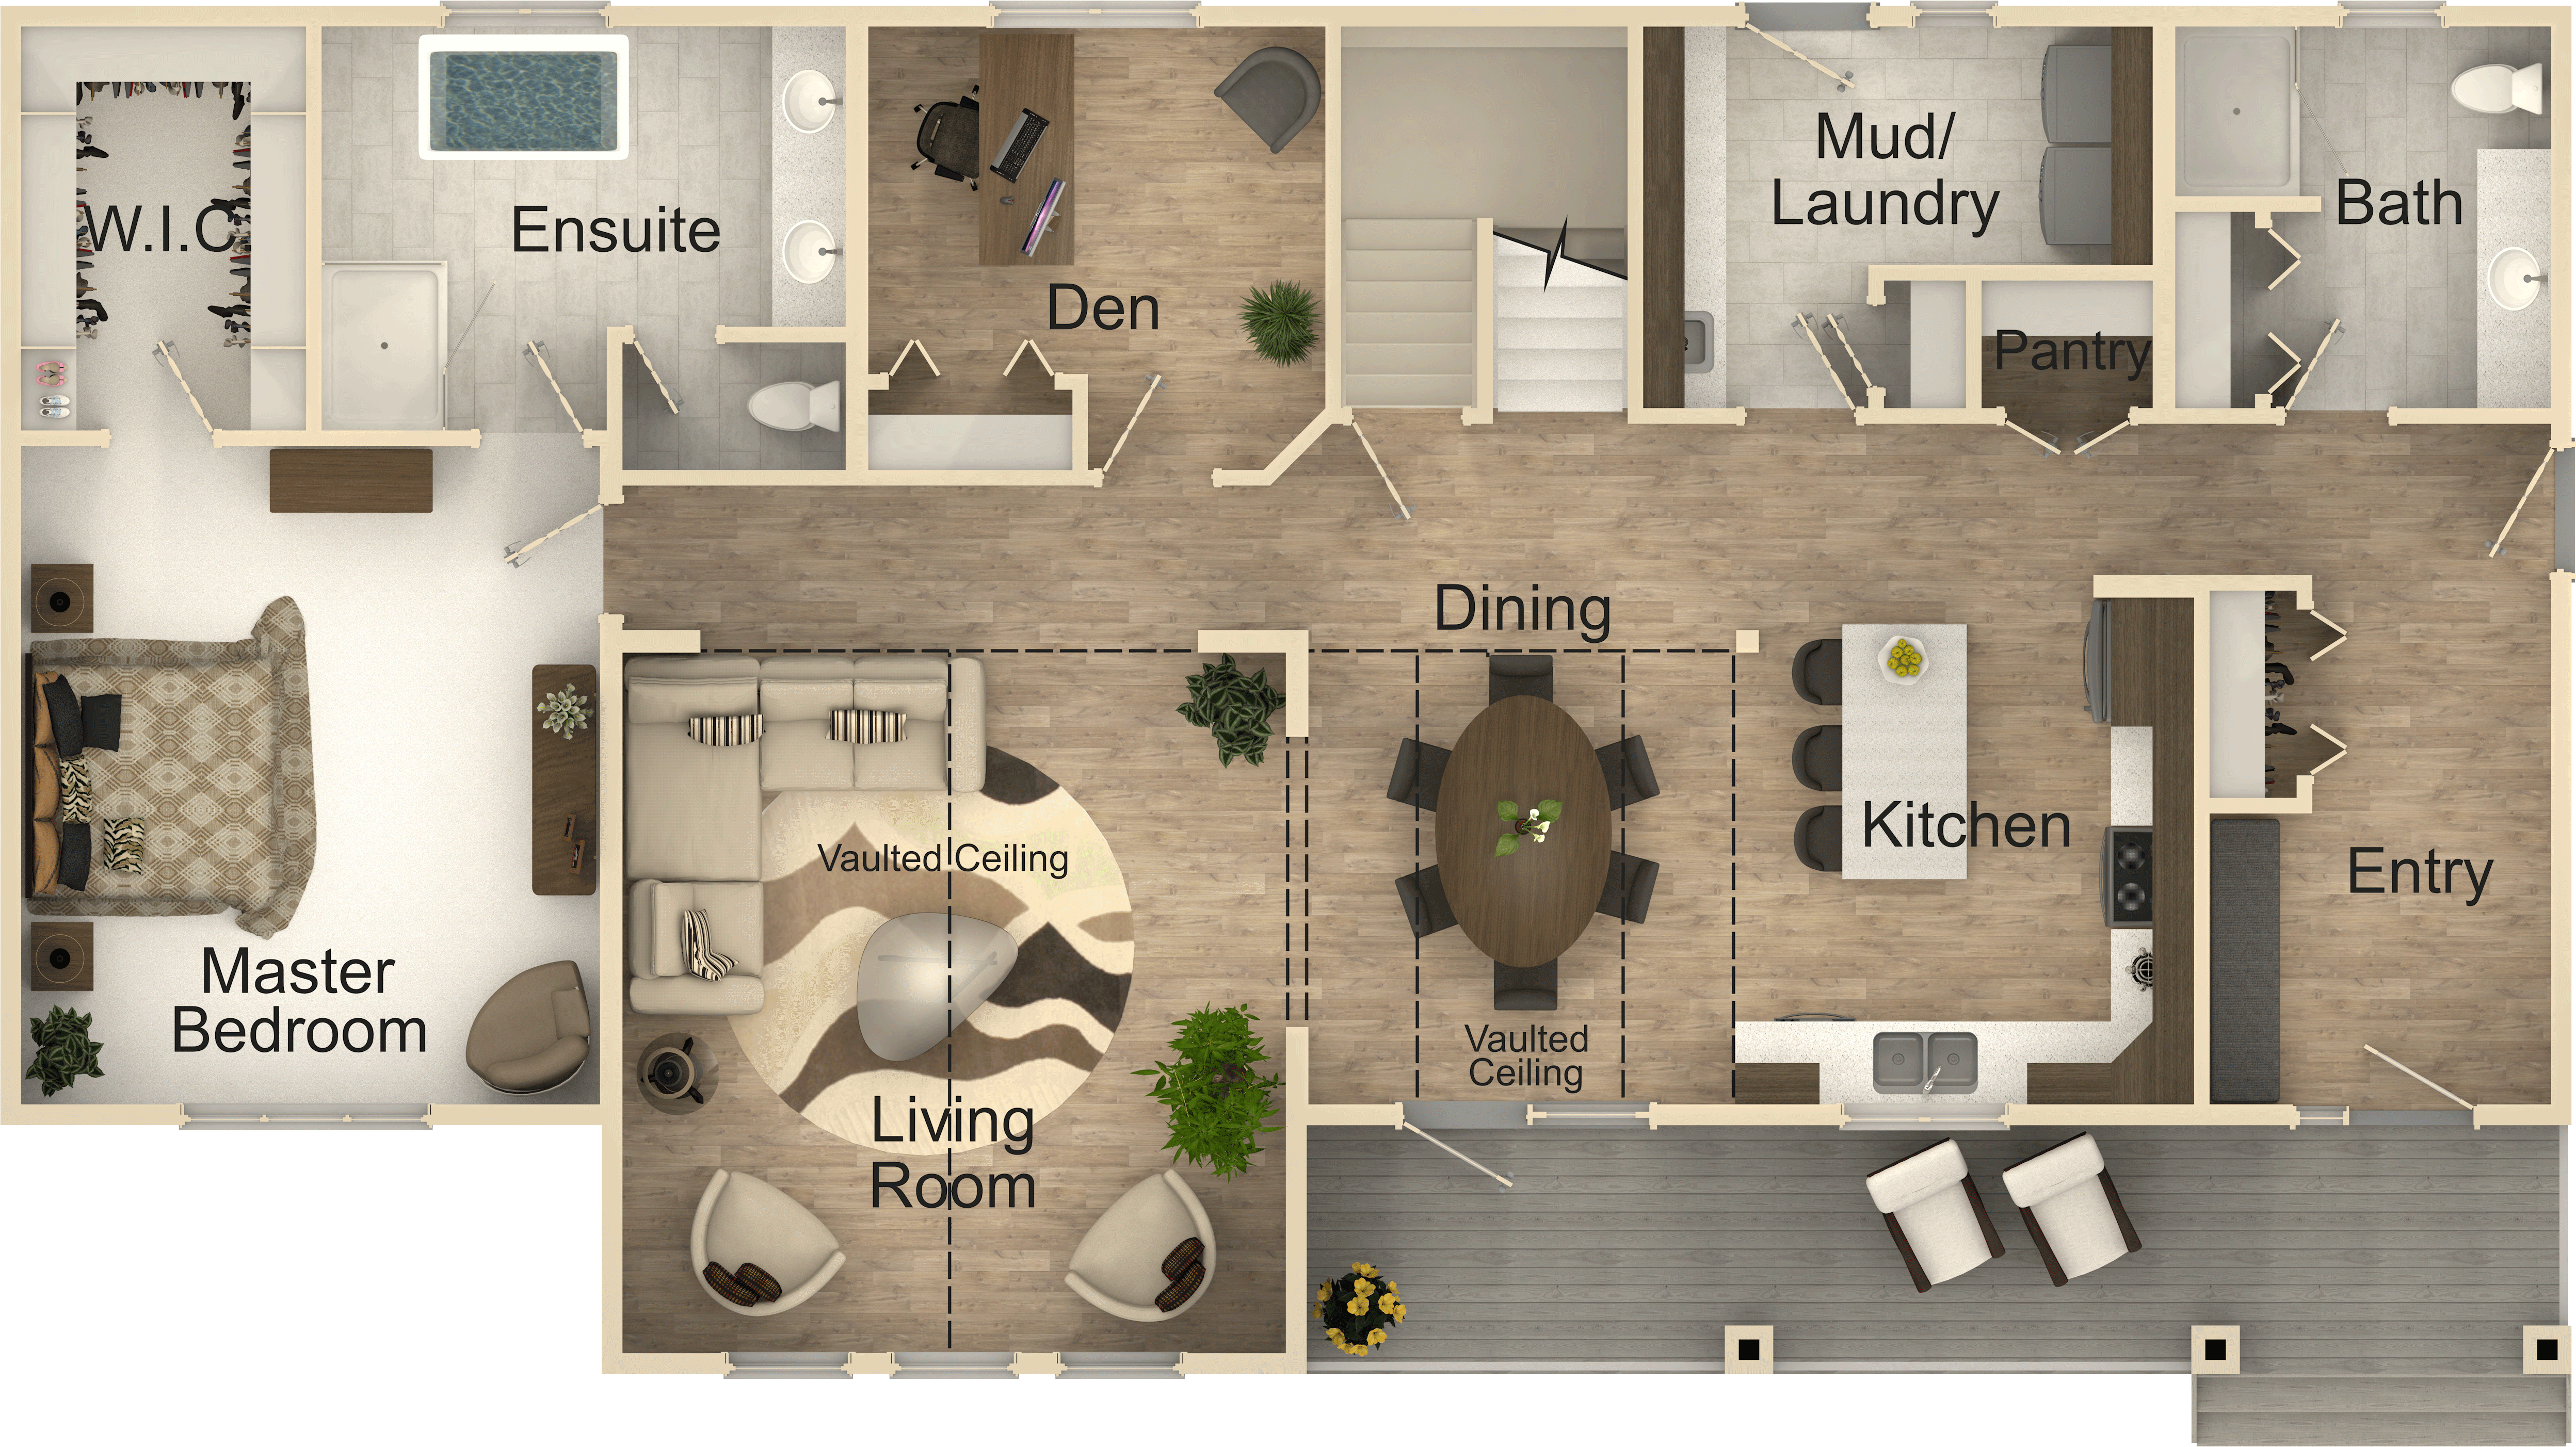 Fairmont---Plan-(Main-Floor).png